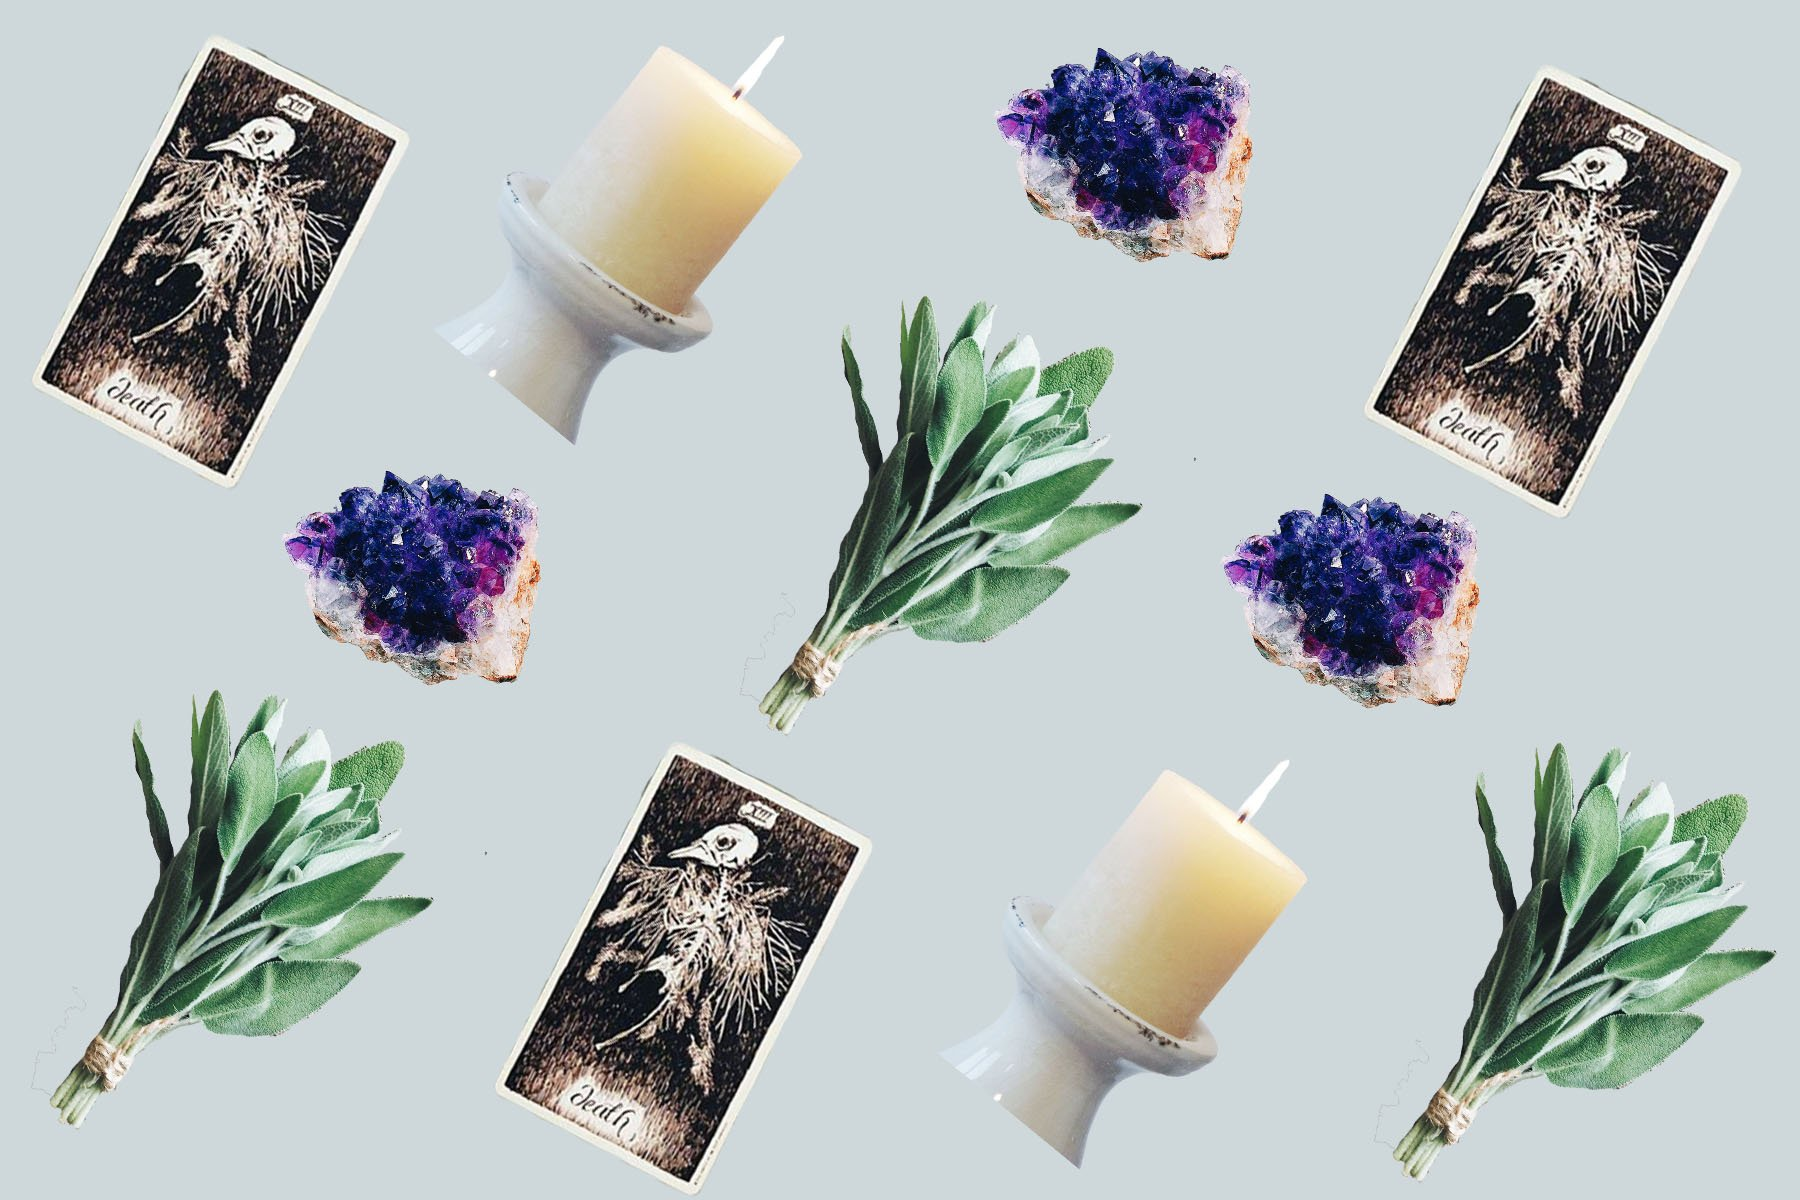 Your Ultimate Guide to Modern Witchcraft Tools: How to Use Them and More